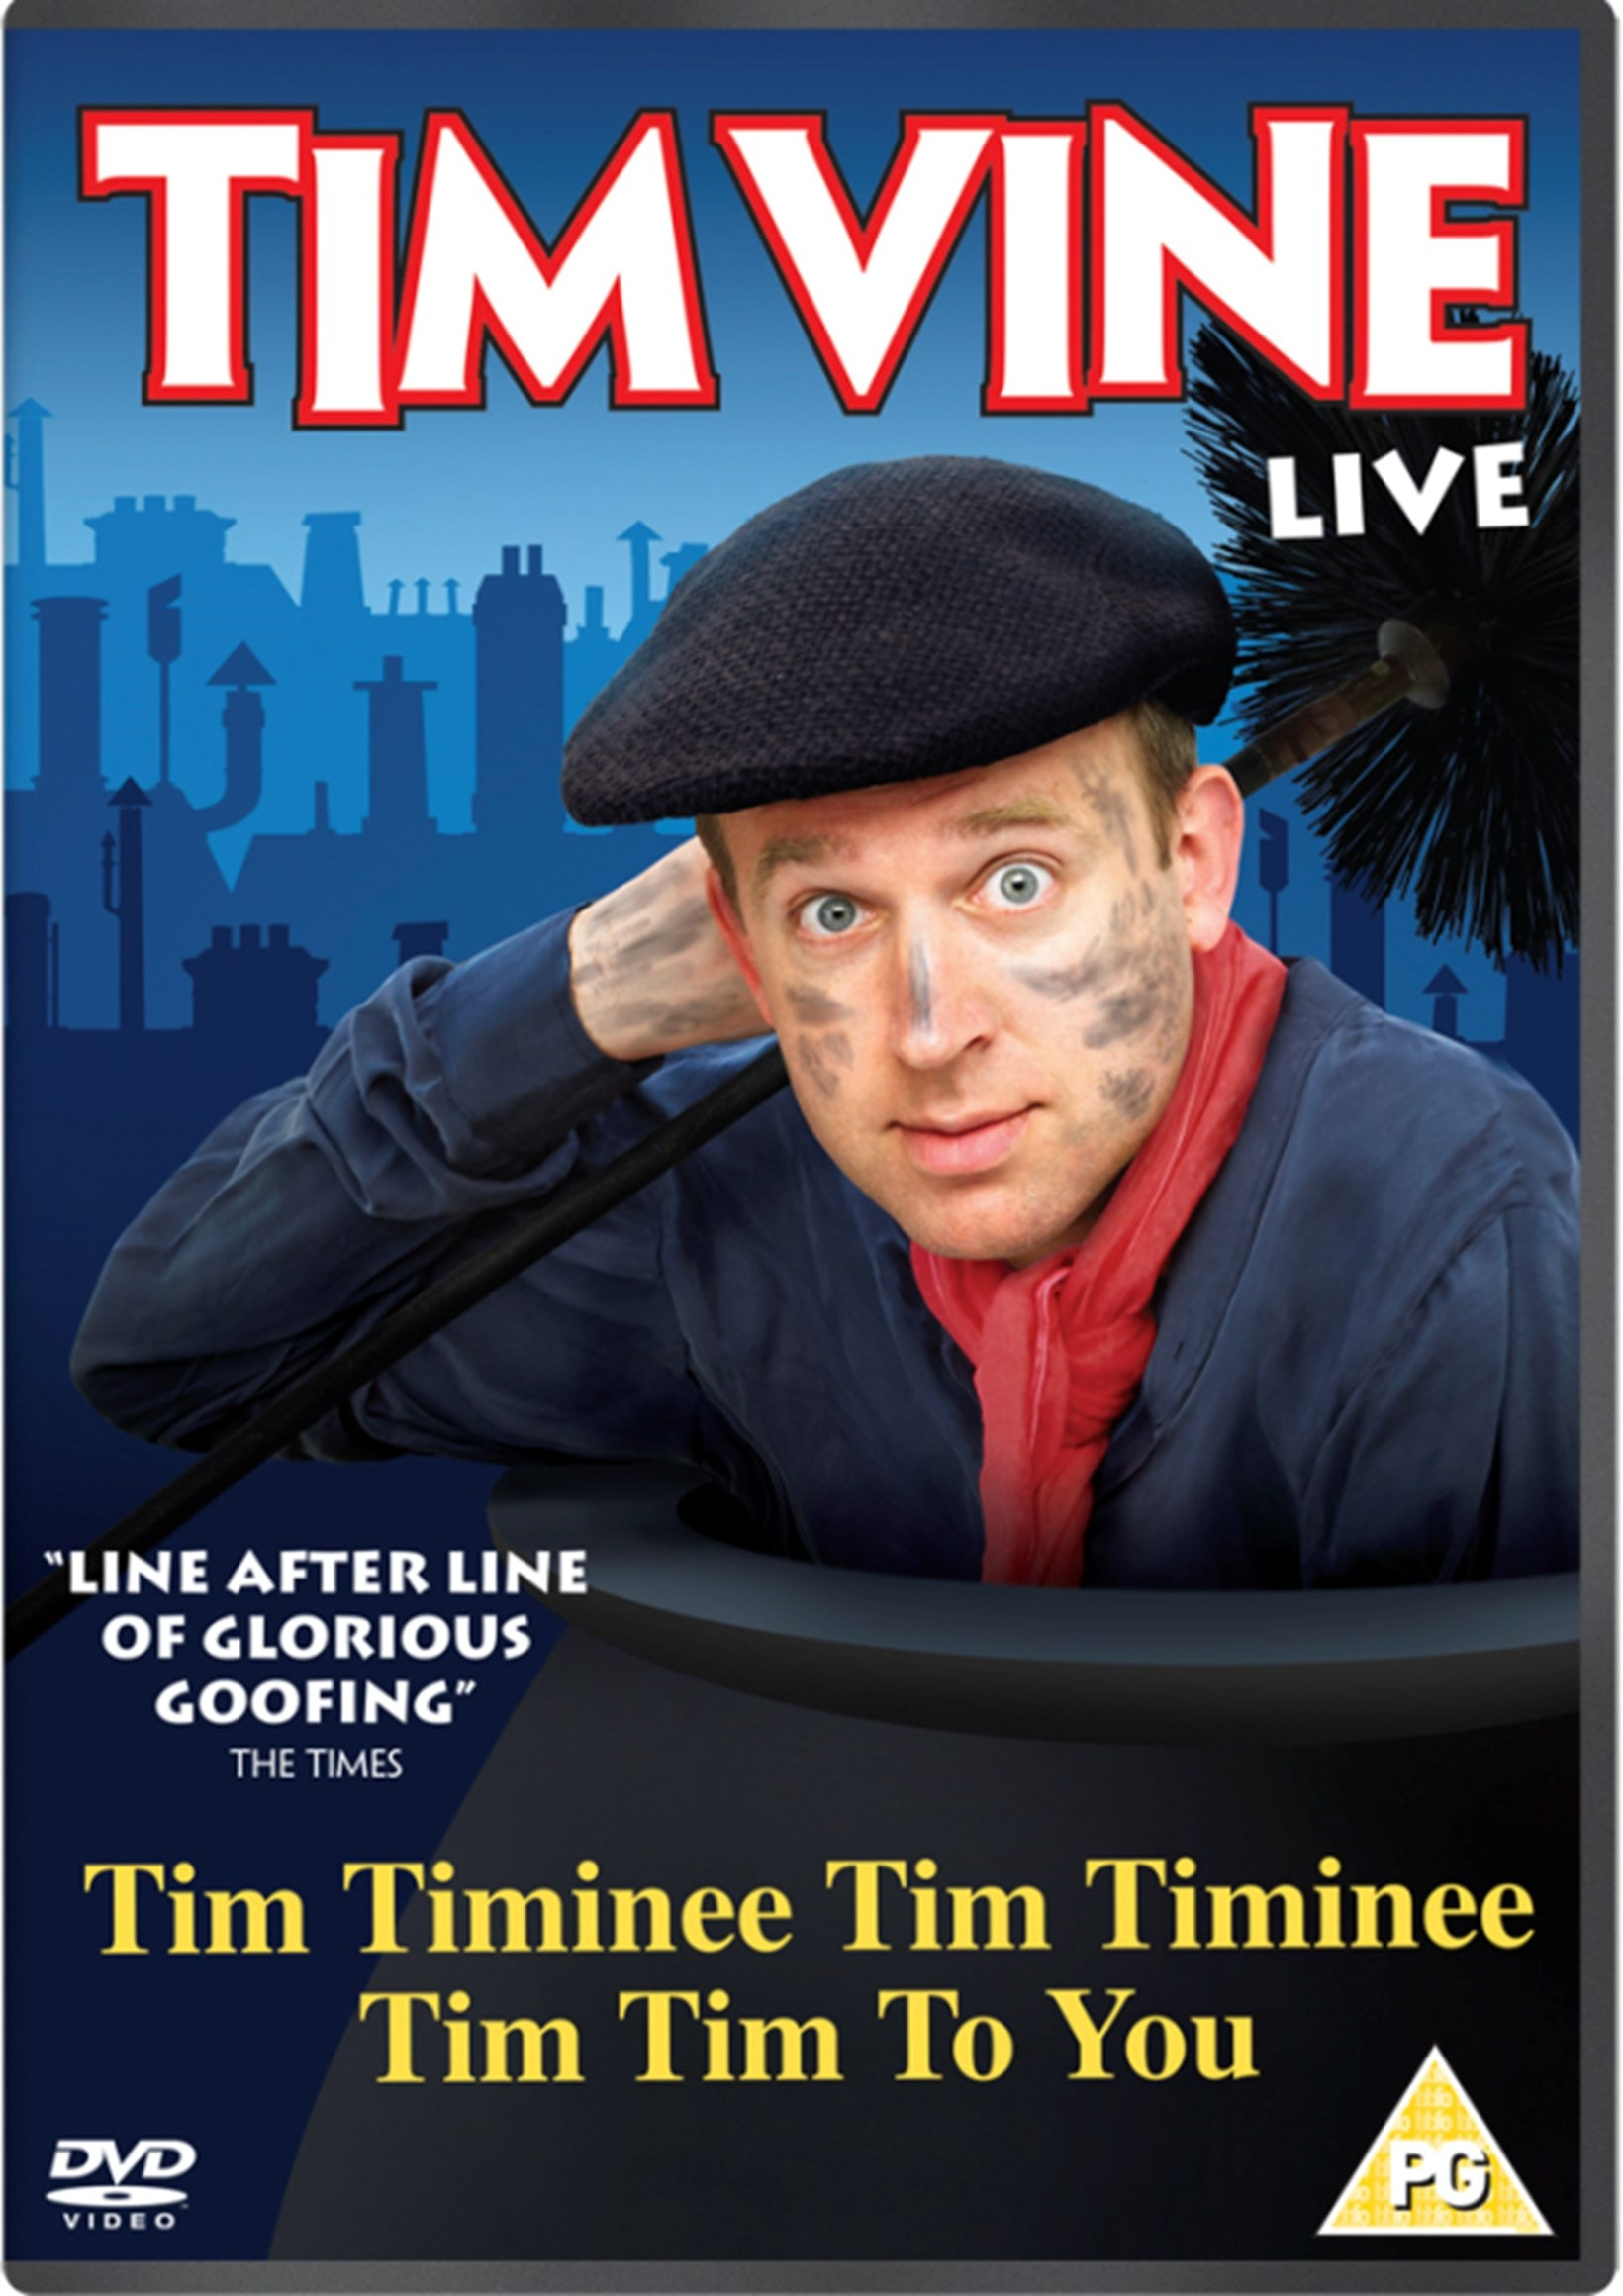 Tim Vine: Tim Timinee Tim Timinee Tim Tim to You